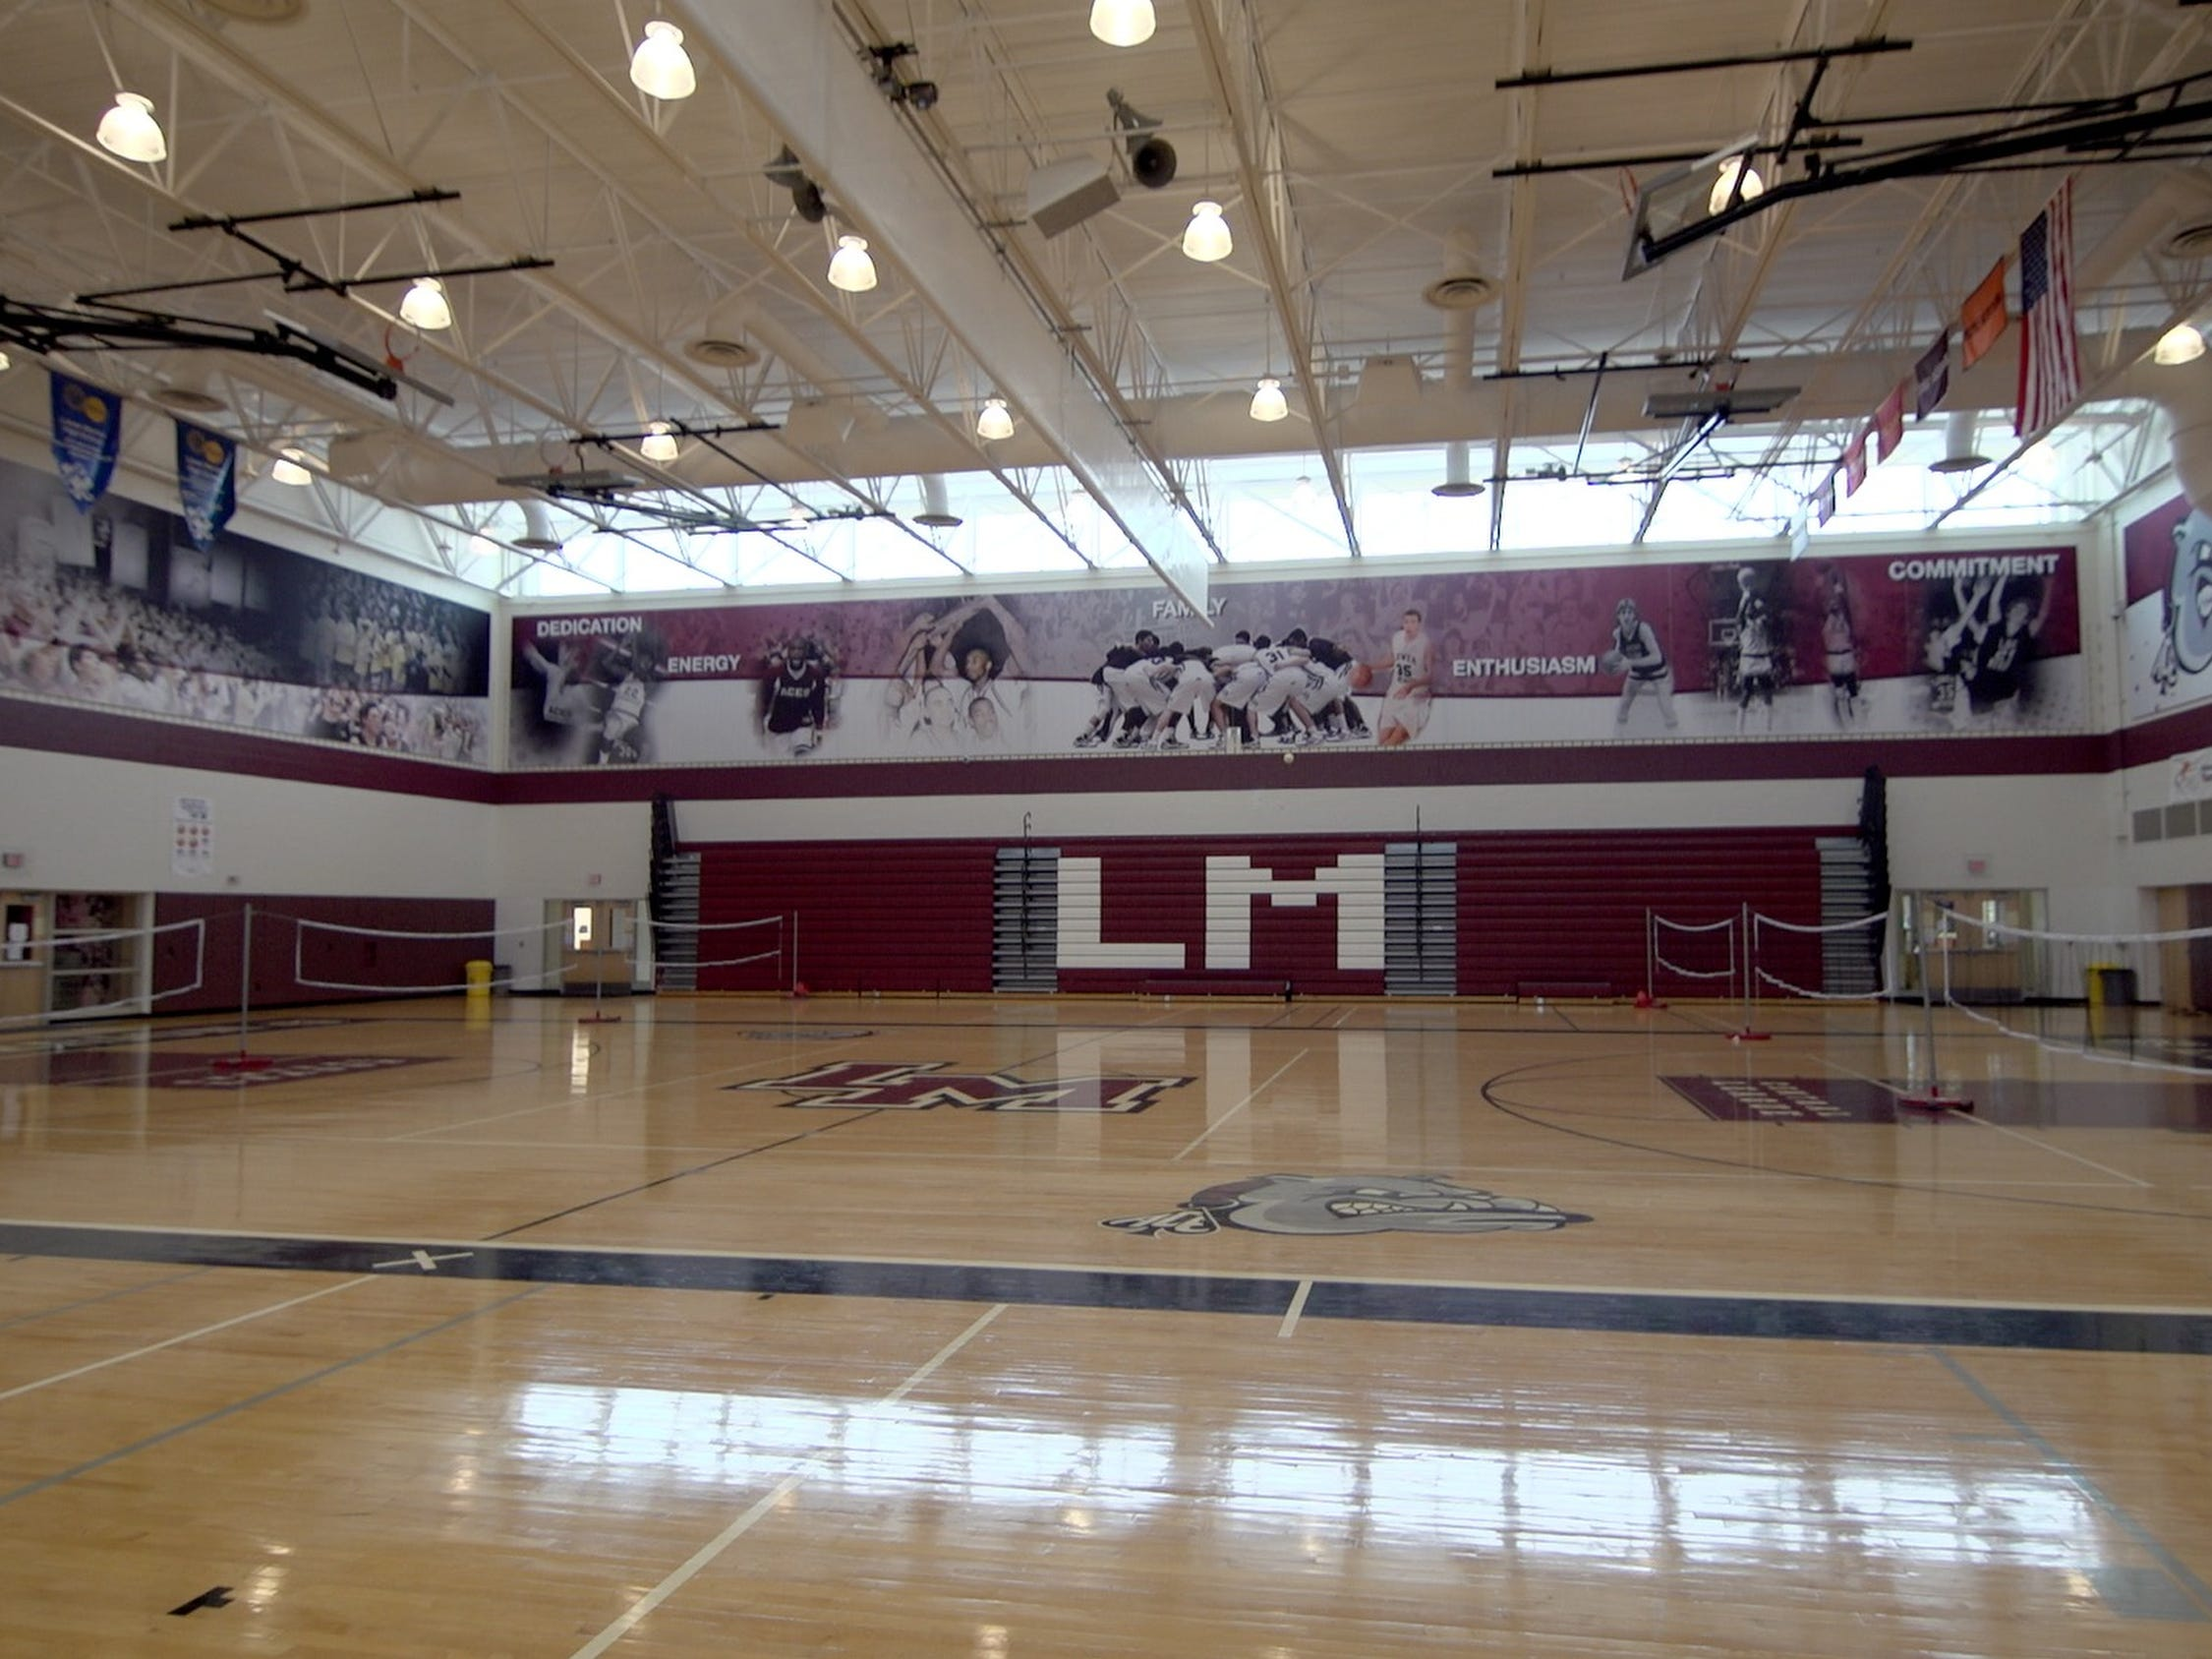 The gym at Lower Merion High School, Kobe's alma mater, is now named after him.